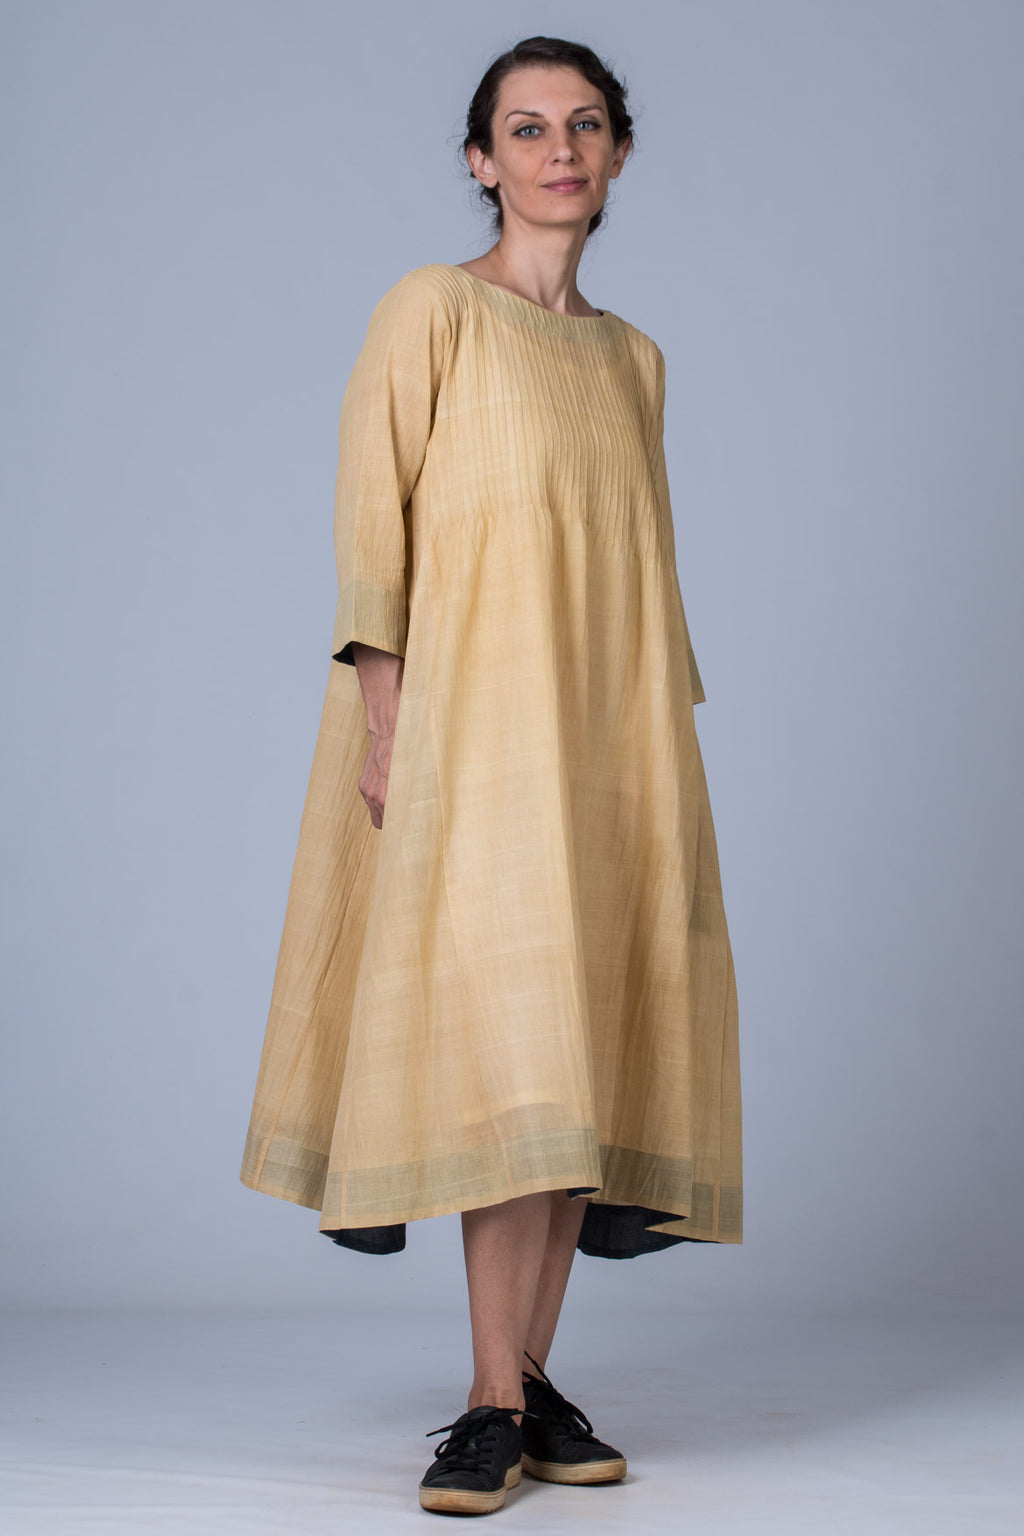 Neem dyed Organic cotton Dress - UDUPU